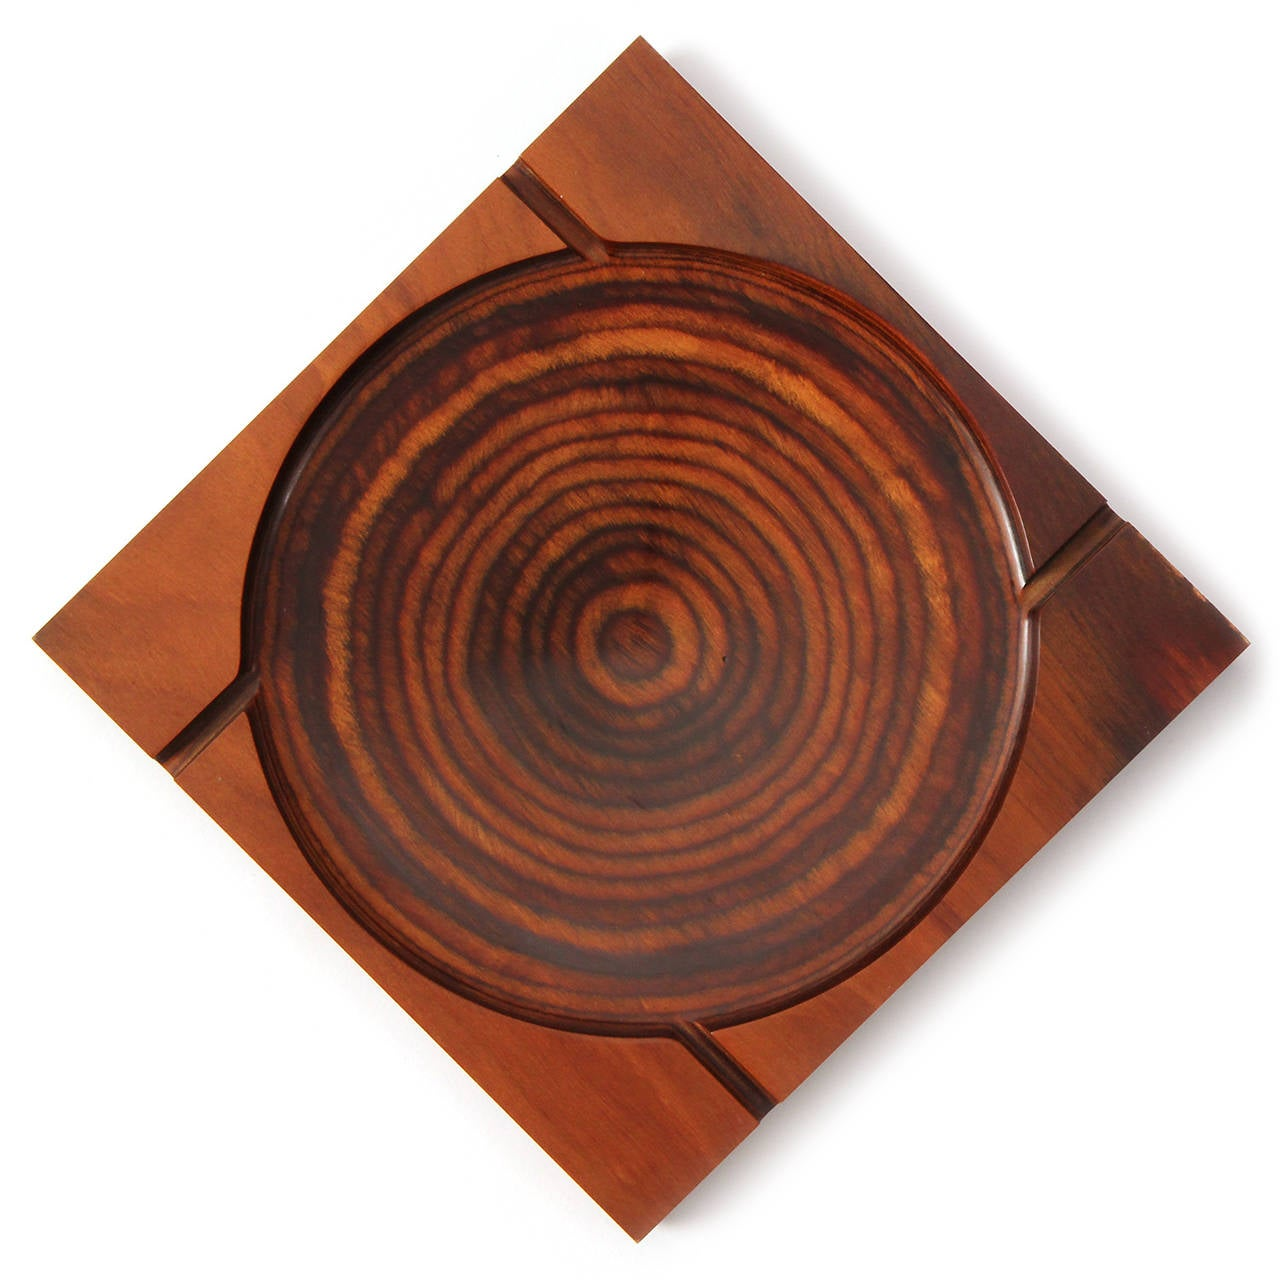 Modernist Ashtray by Shur Wood In Good Condition For Sale In New York, NY